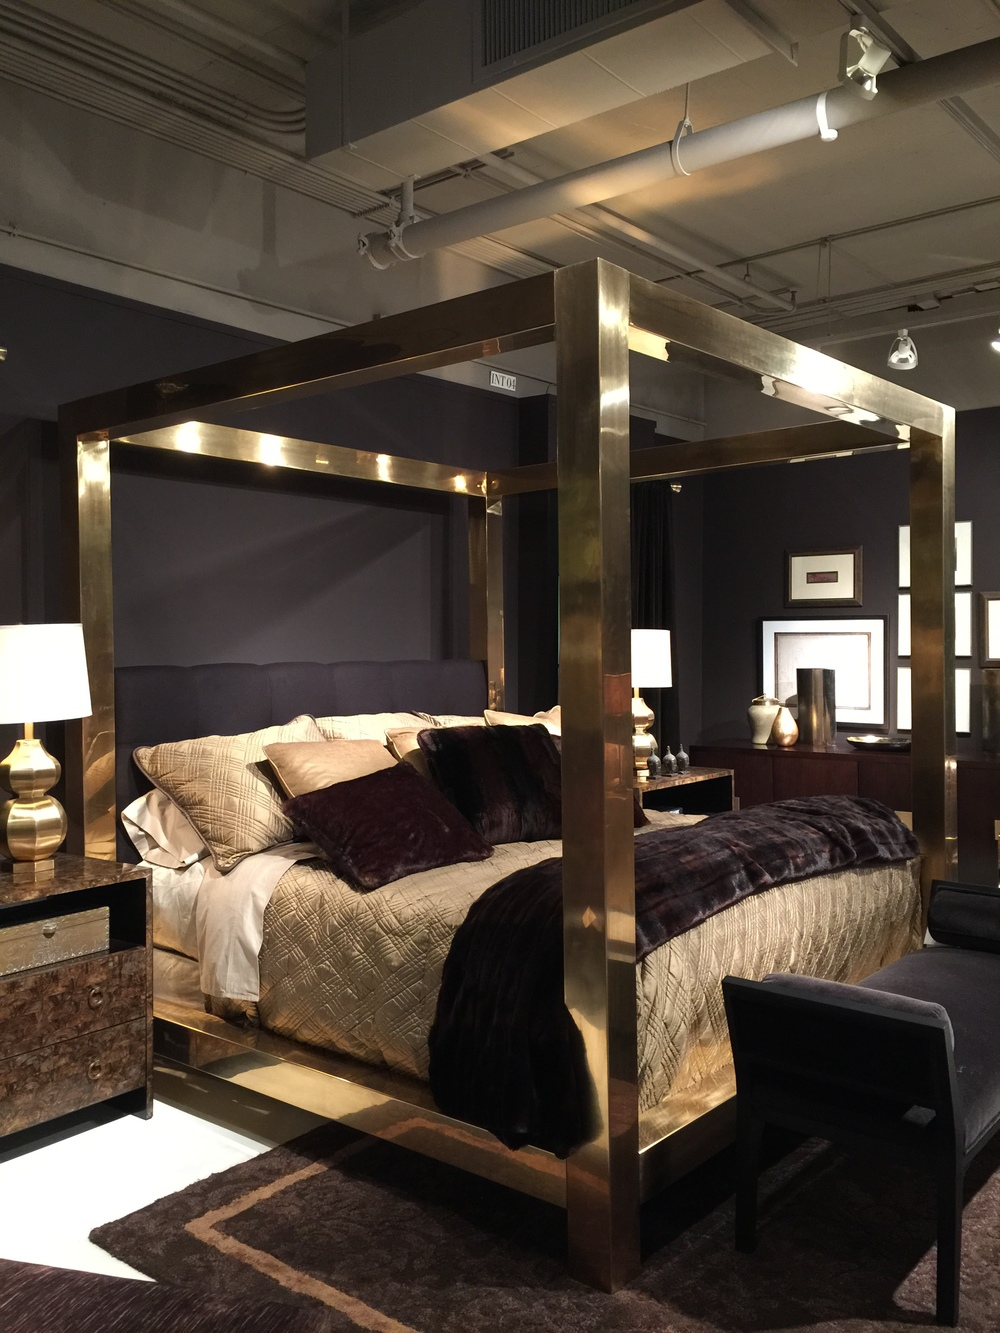 bernhardt-bed-nightstands.jpg